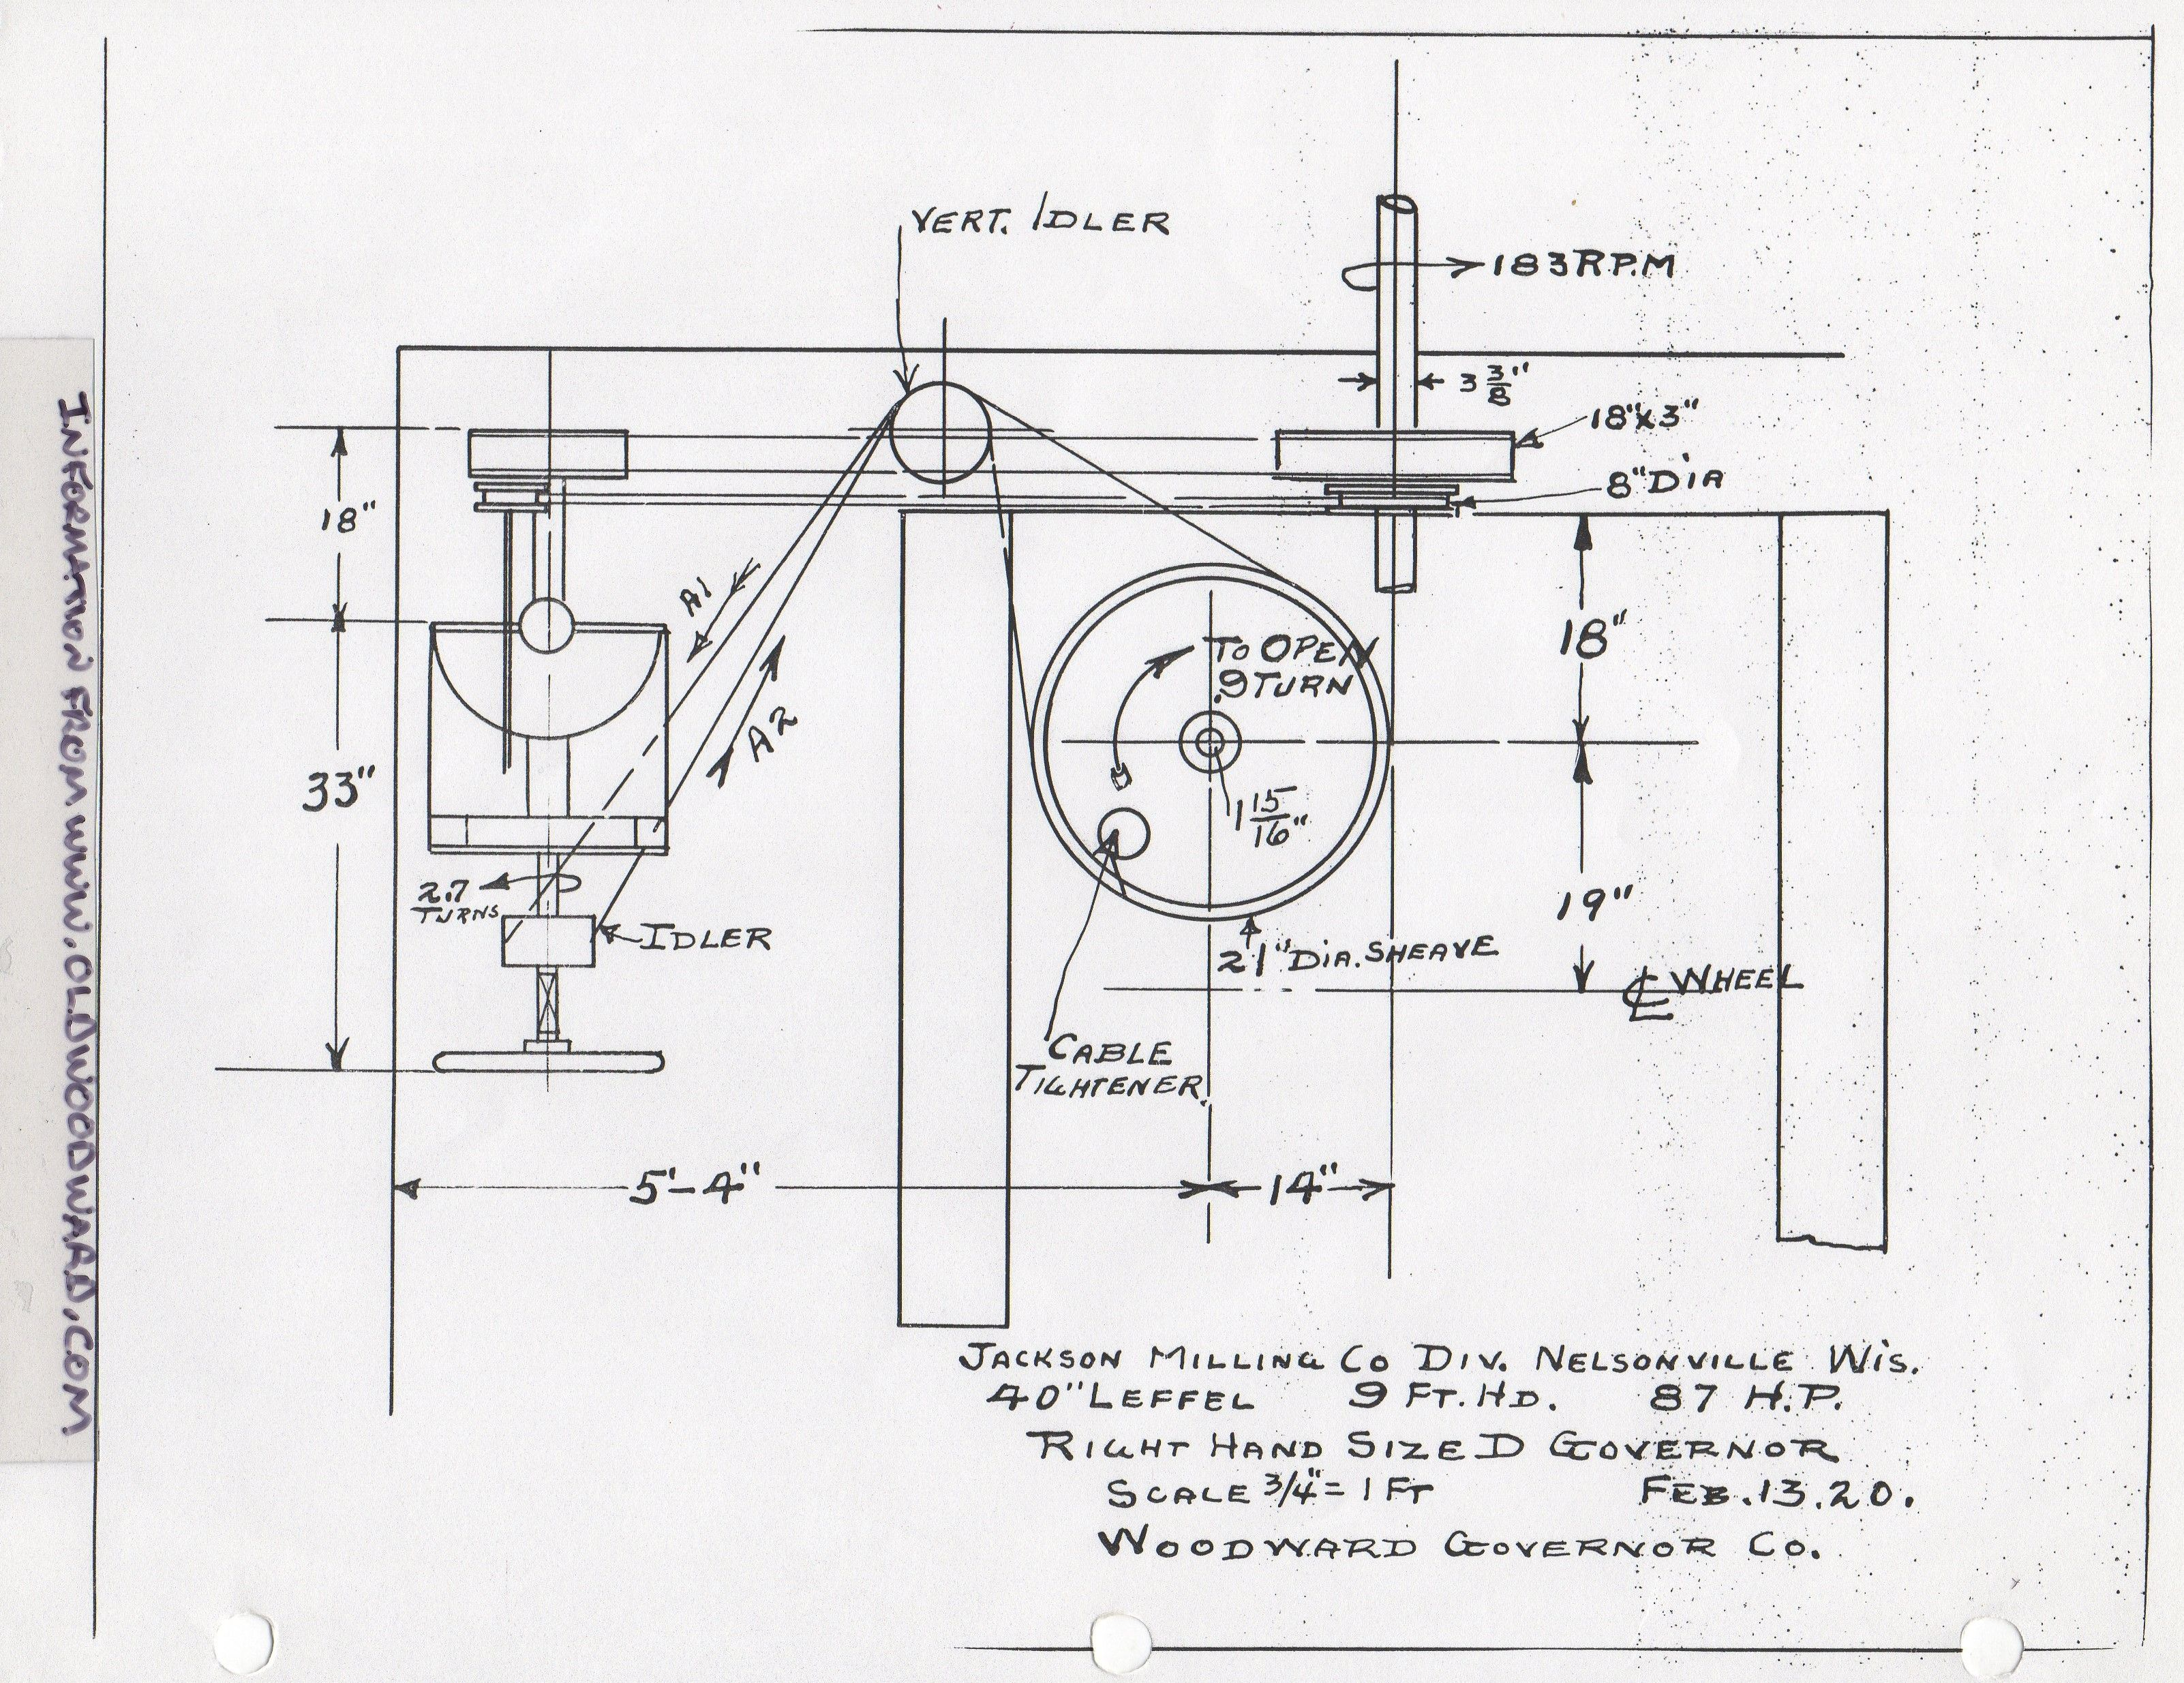 Woodward Governor Company Schematic Drawing From